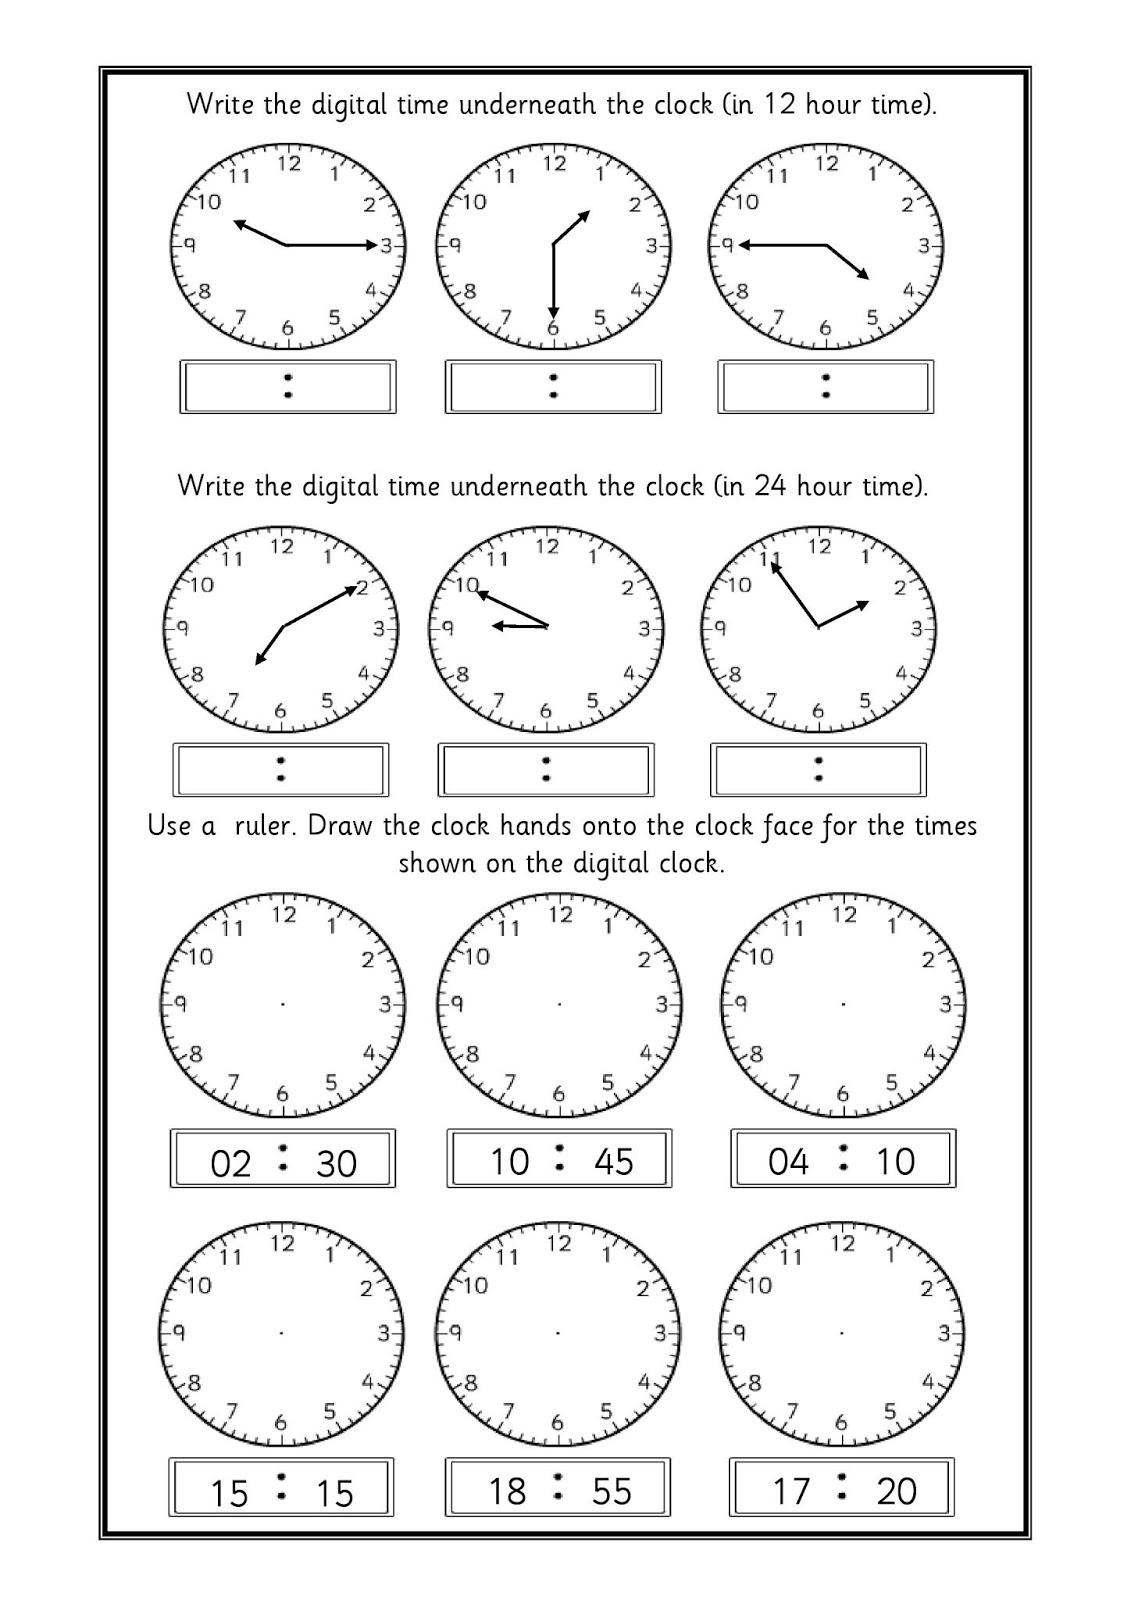 Time Concepts For Primary Kids Kids Fun Time